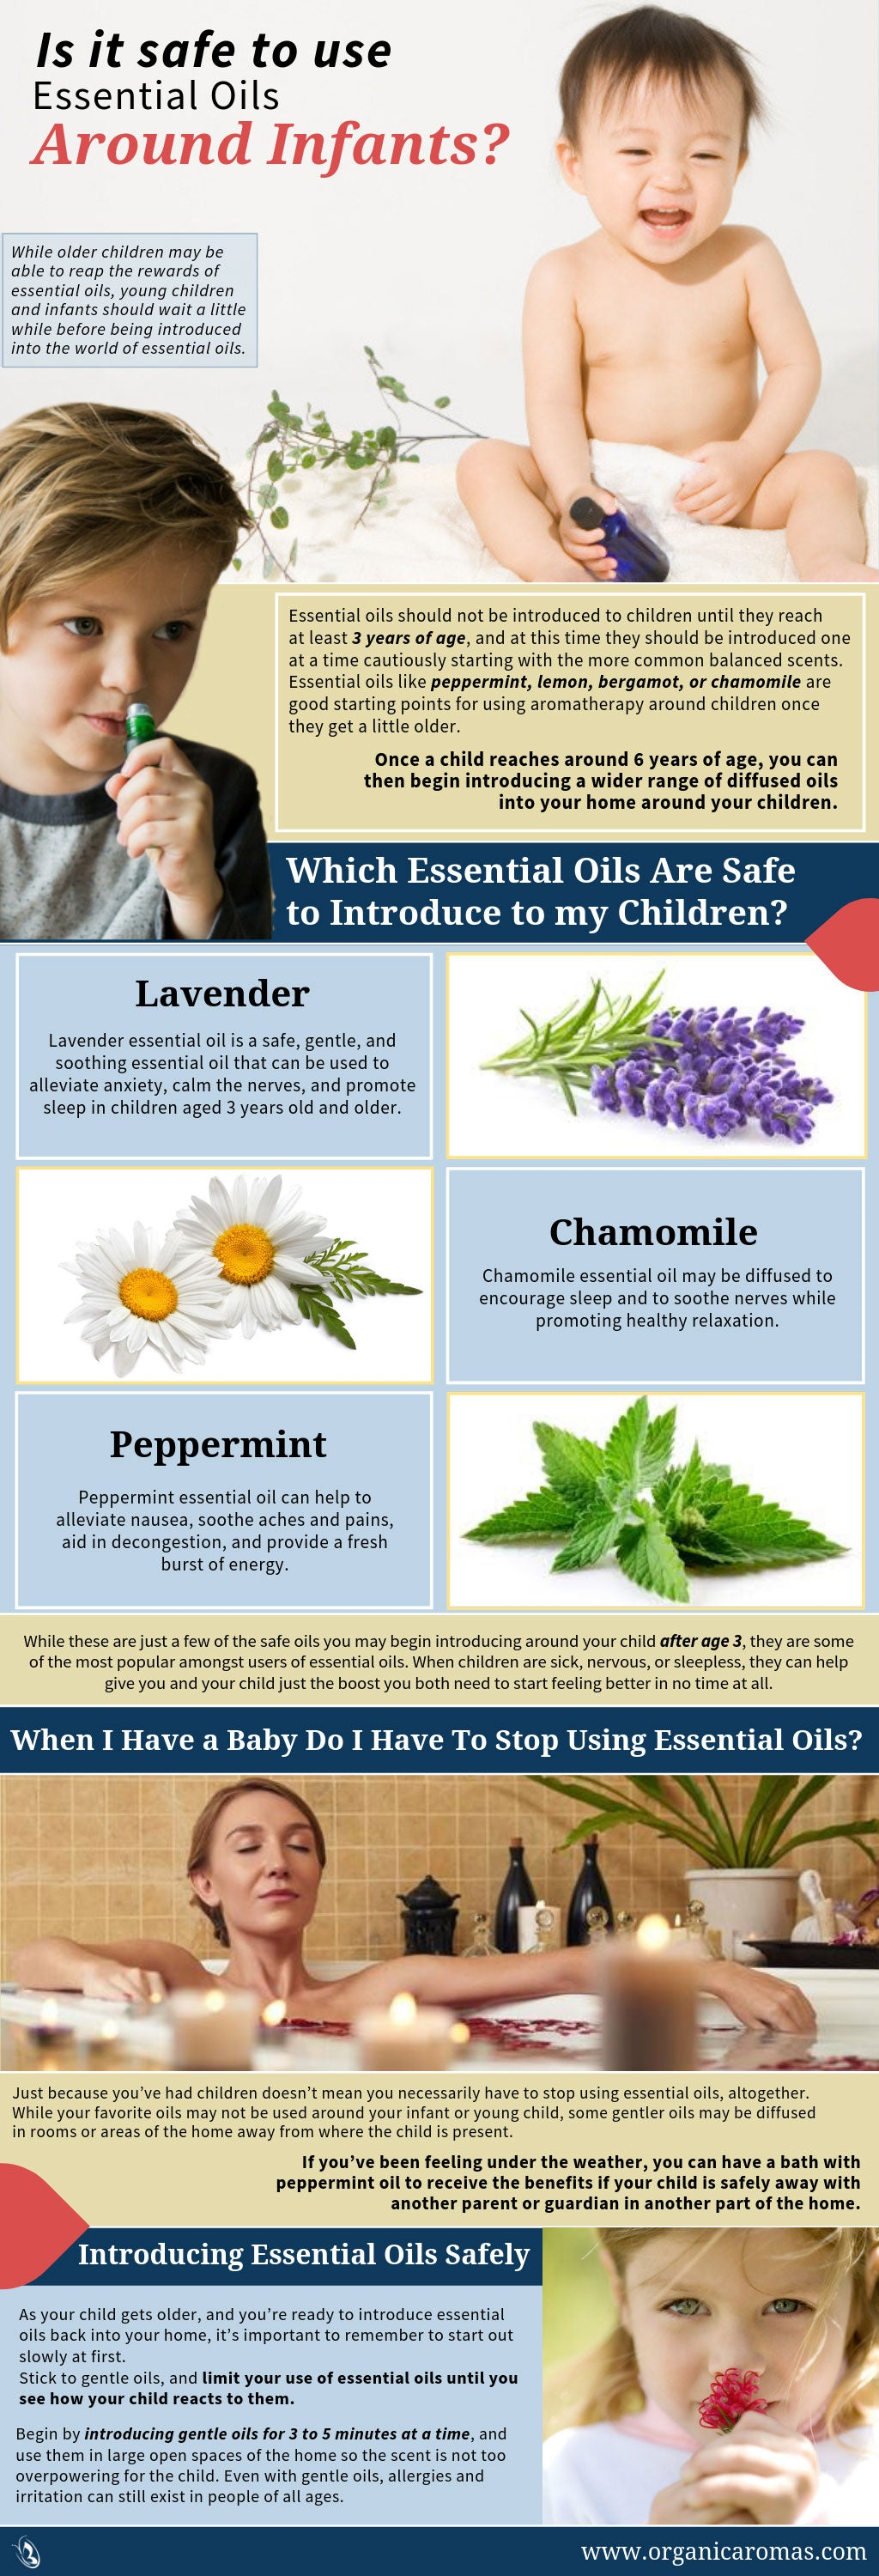 Is It Safe To Use Essential Oils Around Infants Organic Aromas